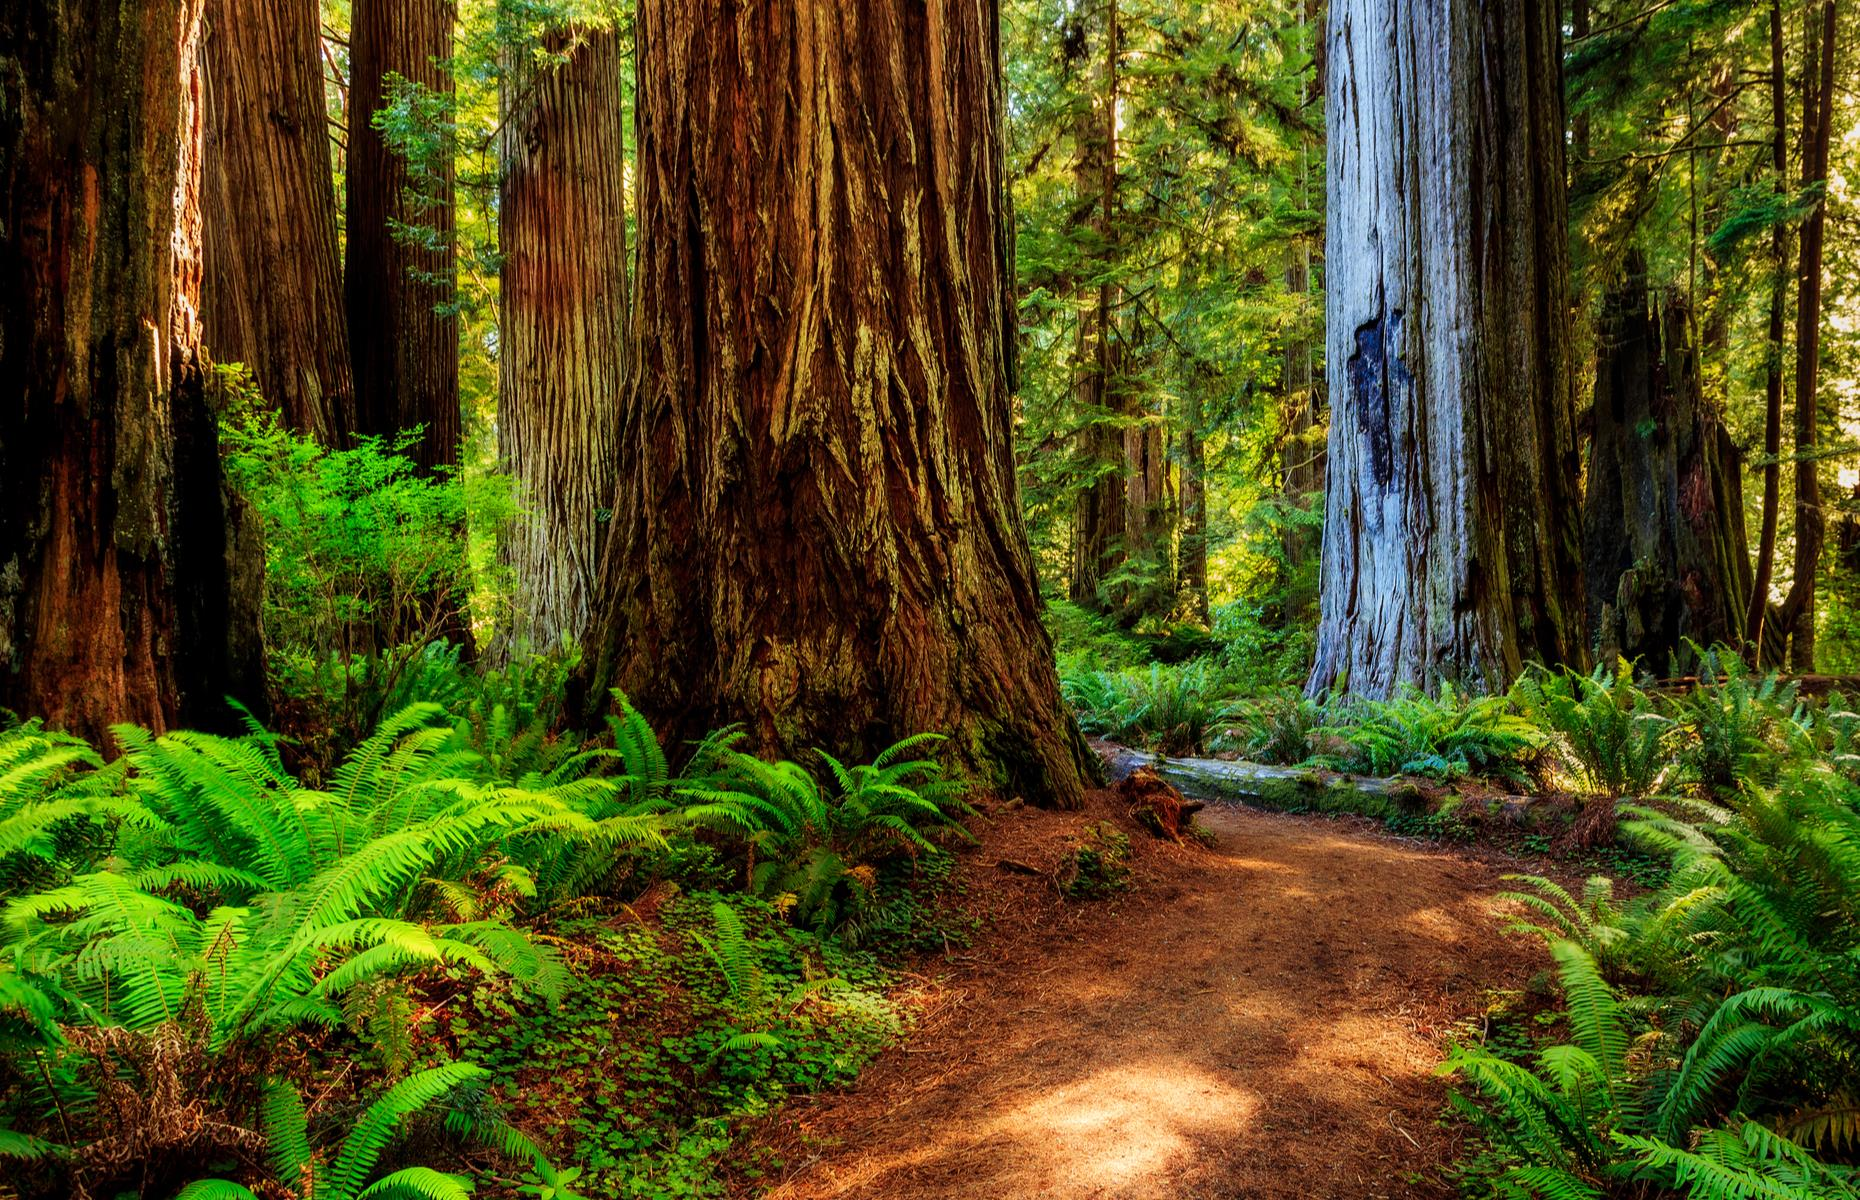 Slide 4 of 27: Spread out along the coast of northern California, the Redwood National and State Parks are made up of protected forests that house some of the world's giants. Here, awesome old-growth redwood trees tower above visitors, many of them hundreds or even thousands of years old.